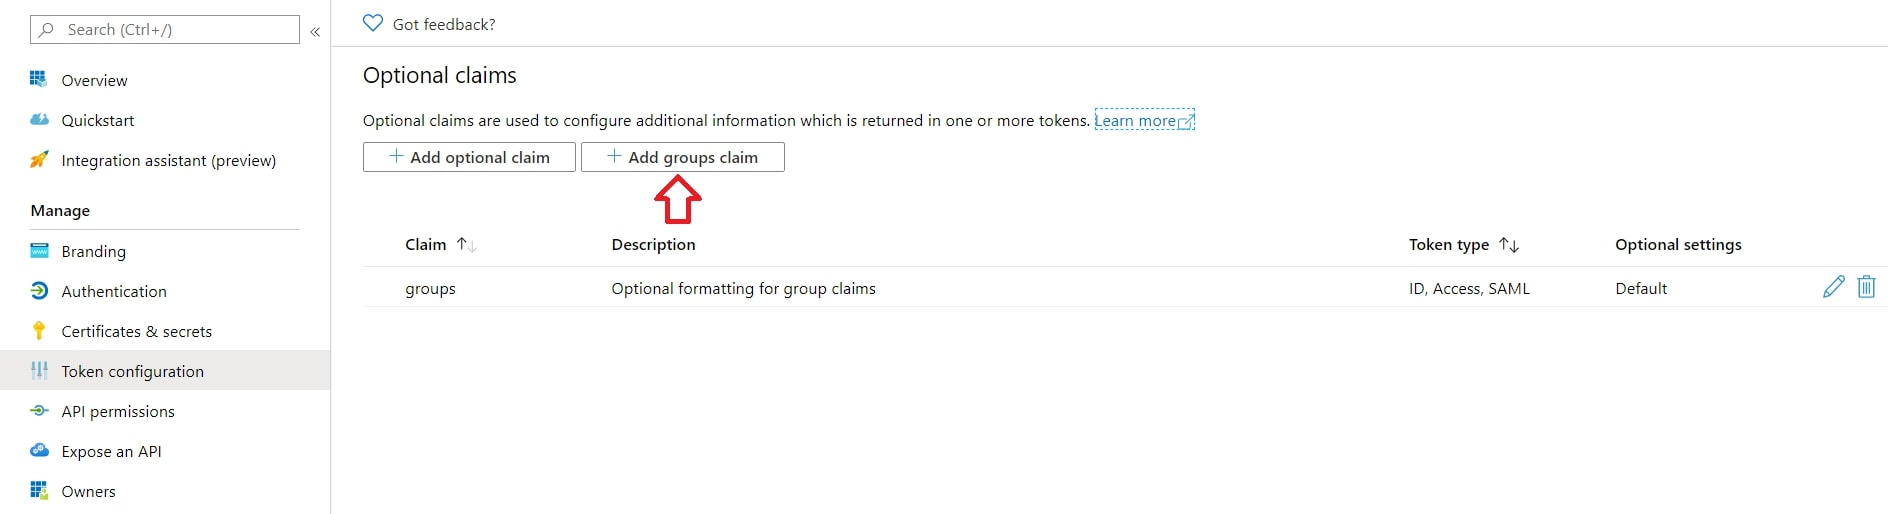 Single Sign On(SSO)using Azure AD, Add groups claim